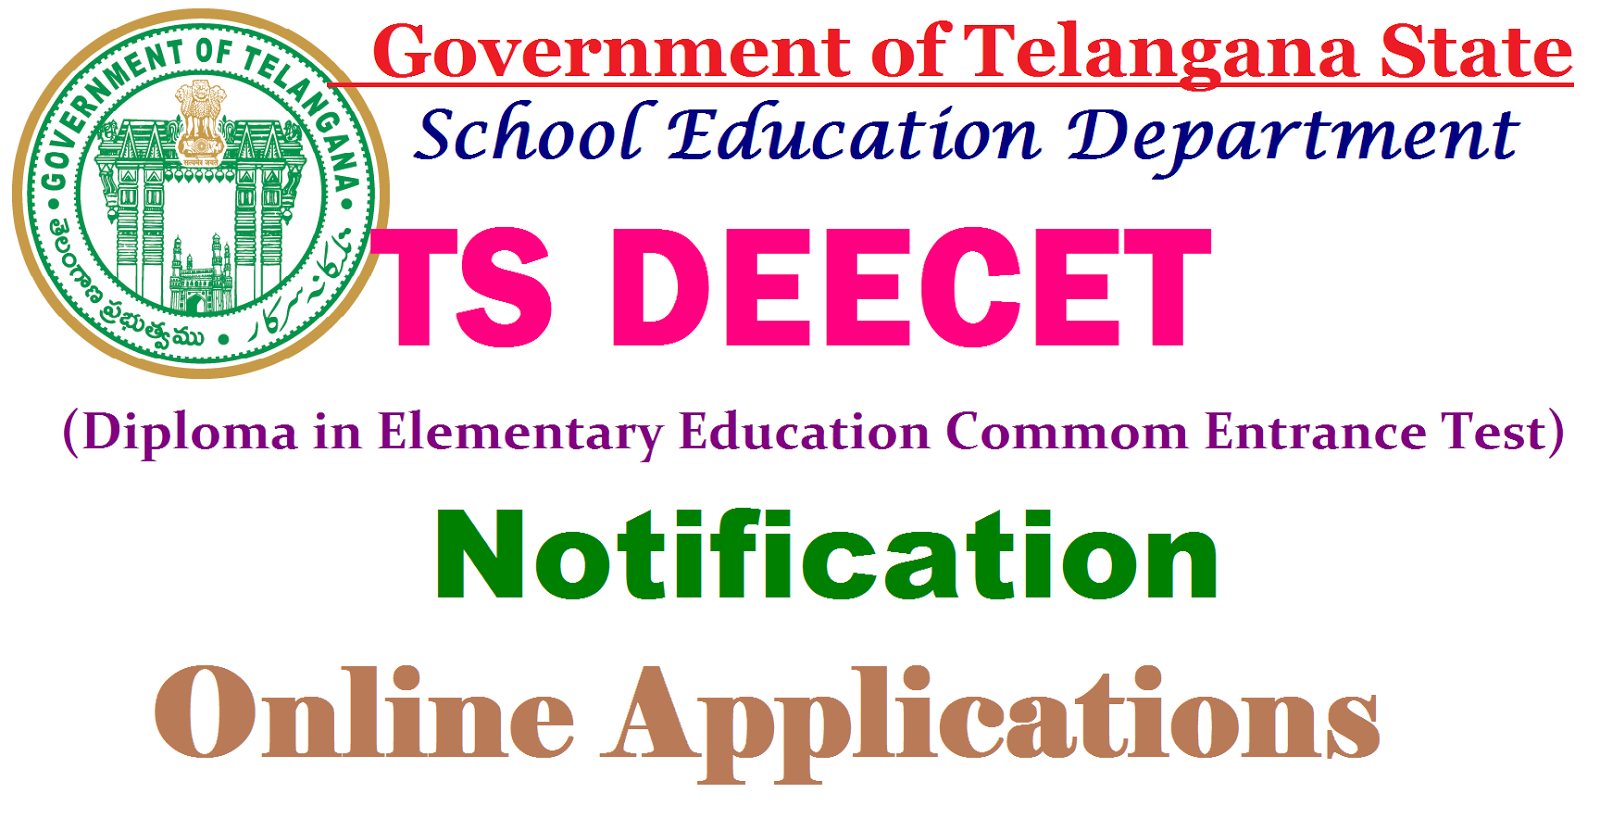 Online applications for DEECET from April 21